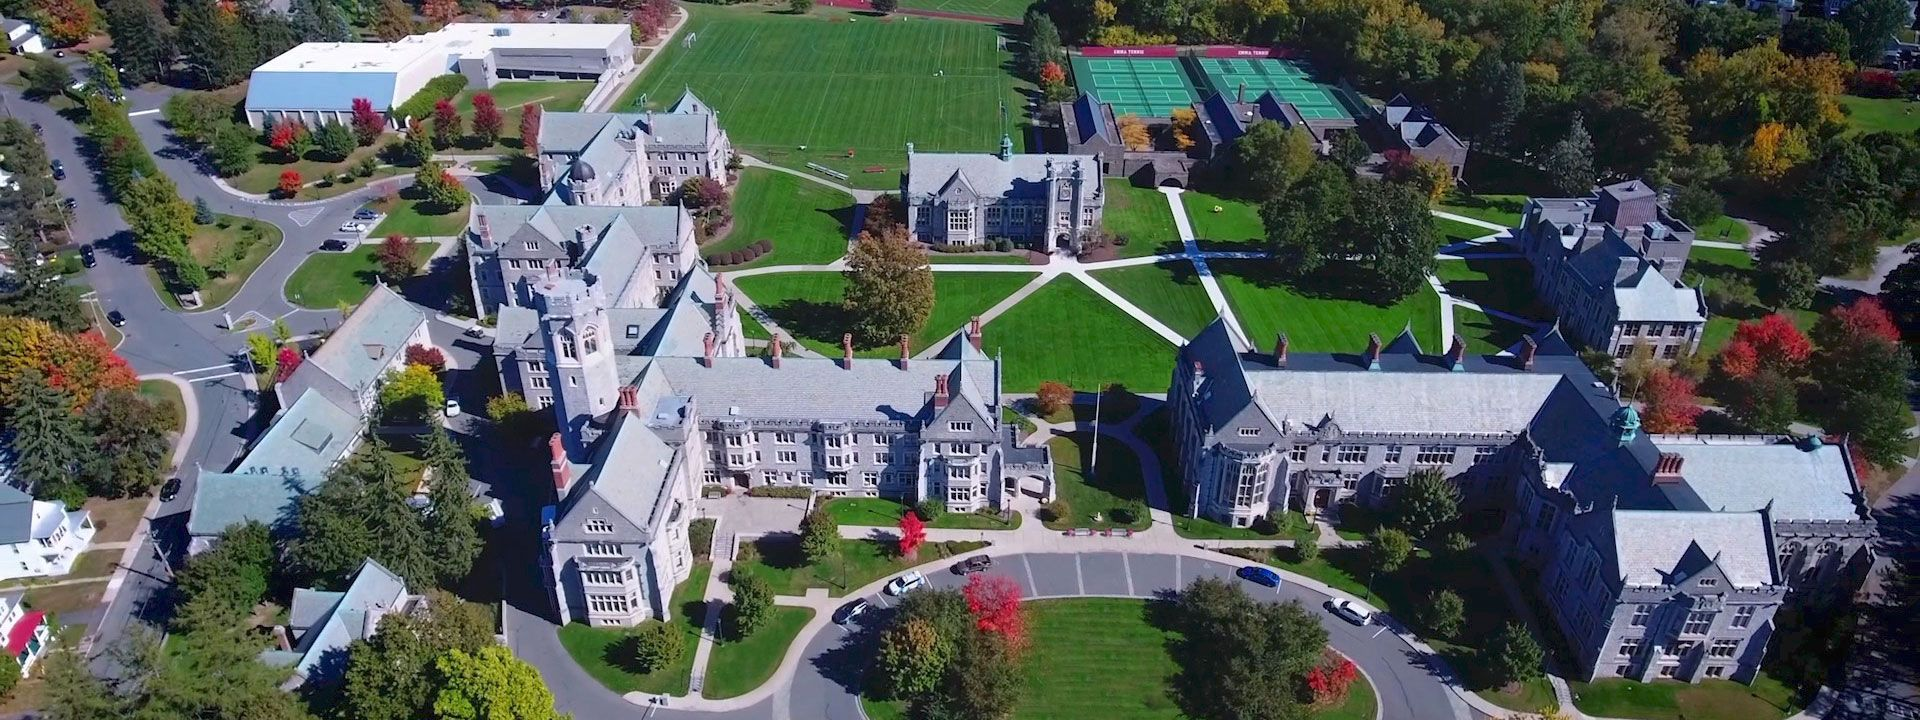 Directions And Campus Maps Emma Willard School In Troy Ny